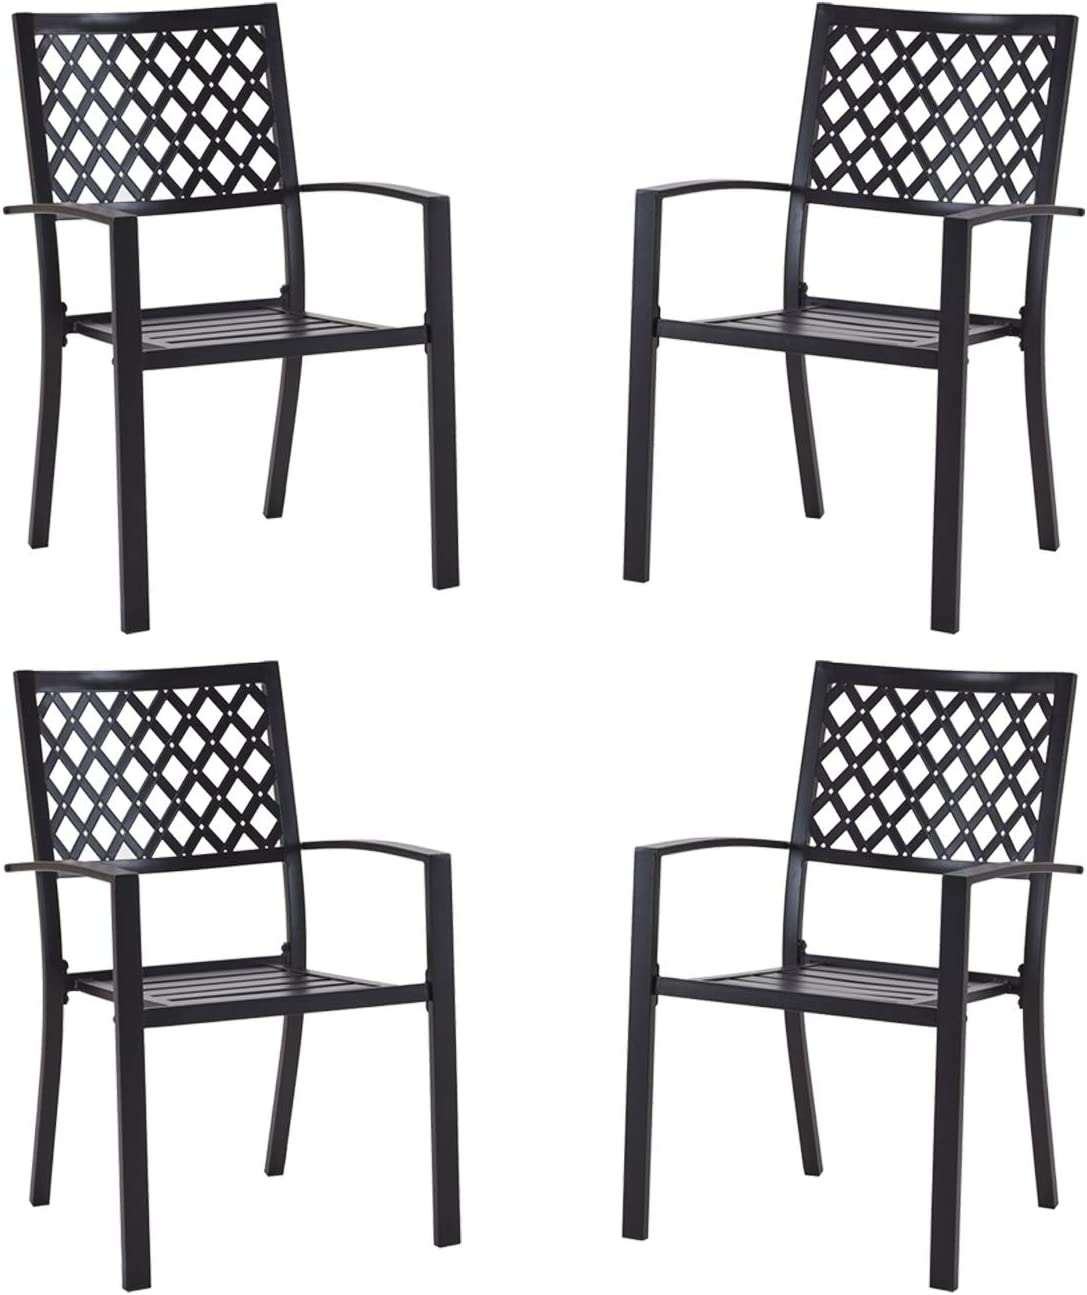 Long-awaited Patio Dining Chairs 40% OFF Cheap Sale Set of 4 Stackable Outdoor Chai Metal Bistro